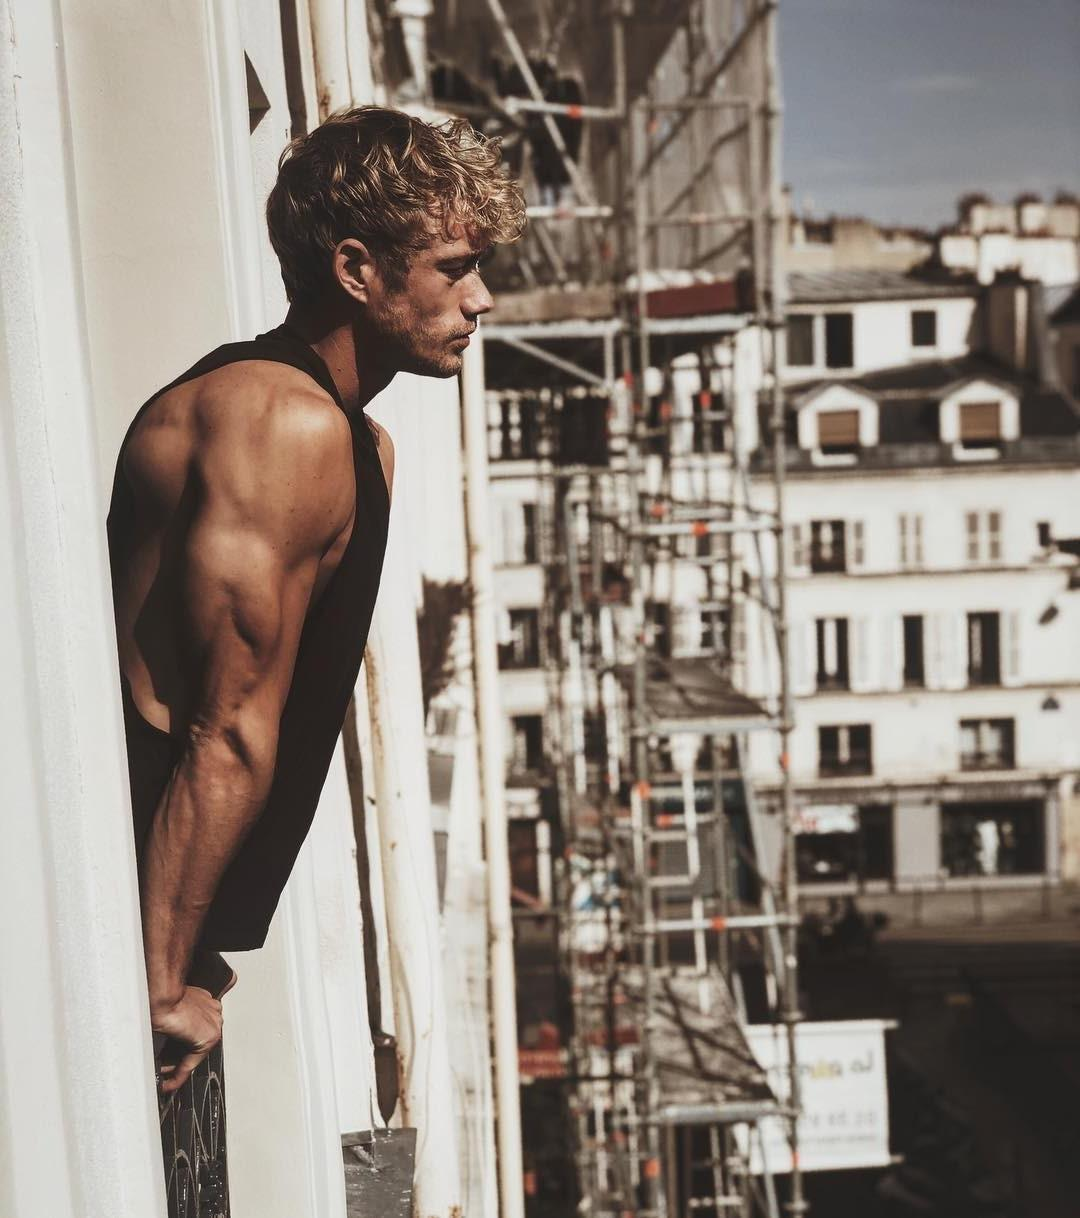 huge-male-hunk-triceps-young-brad-pitt-pictures